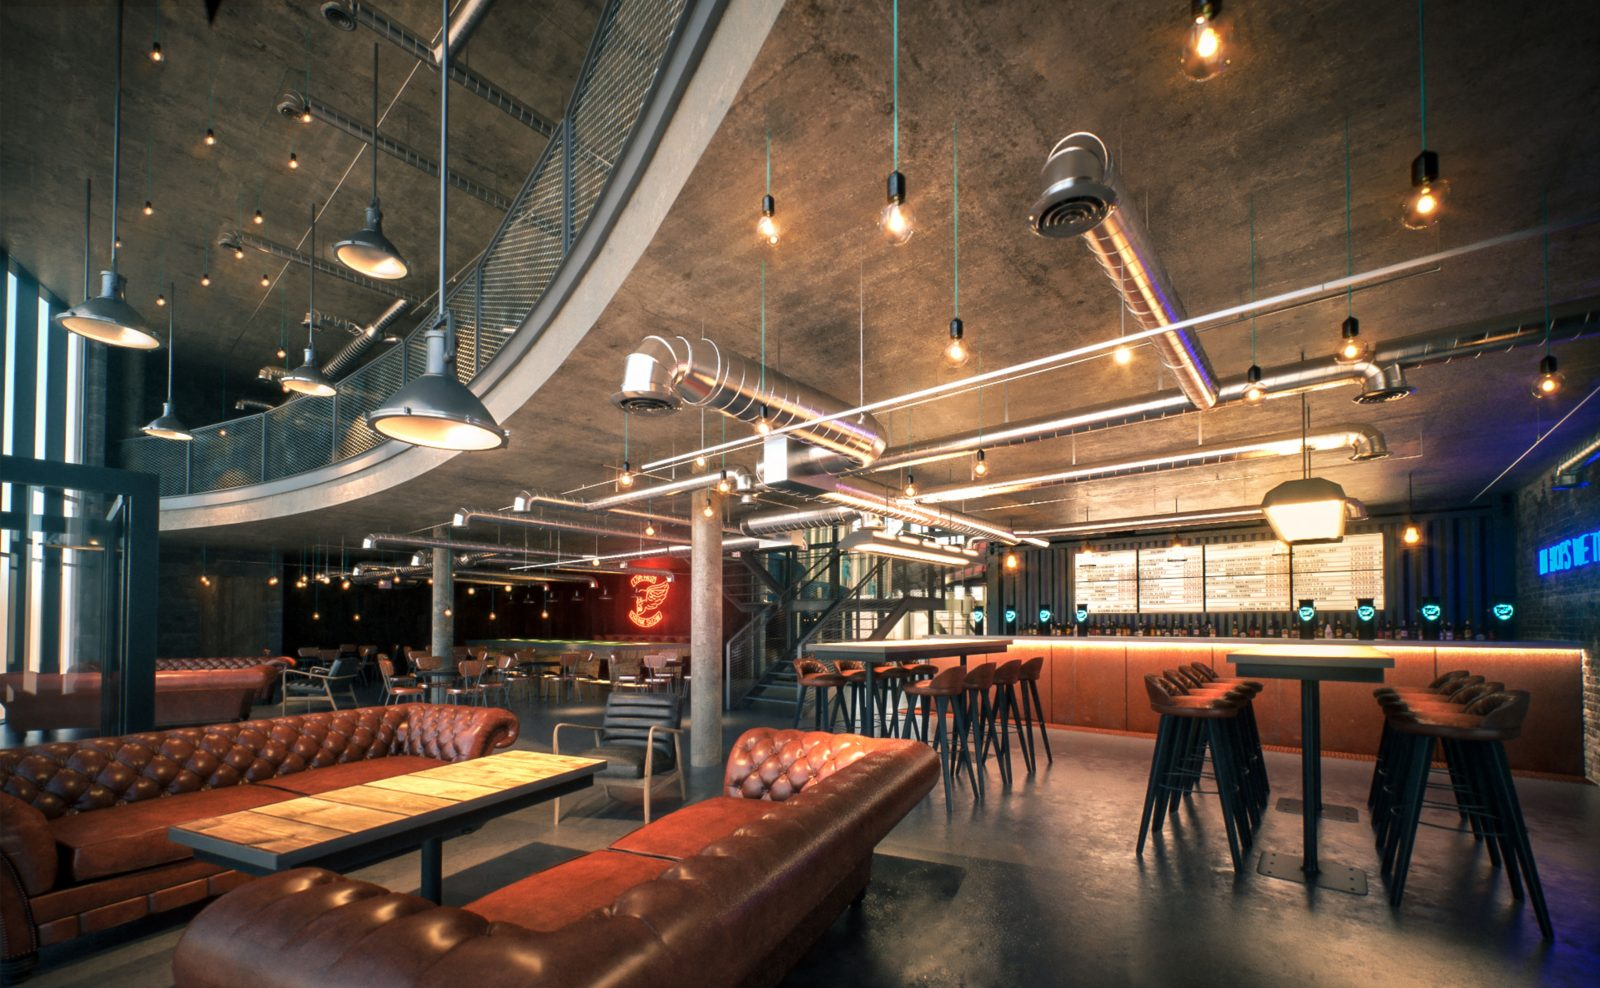 BrewDog craft beer hotel, Scotland